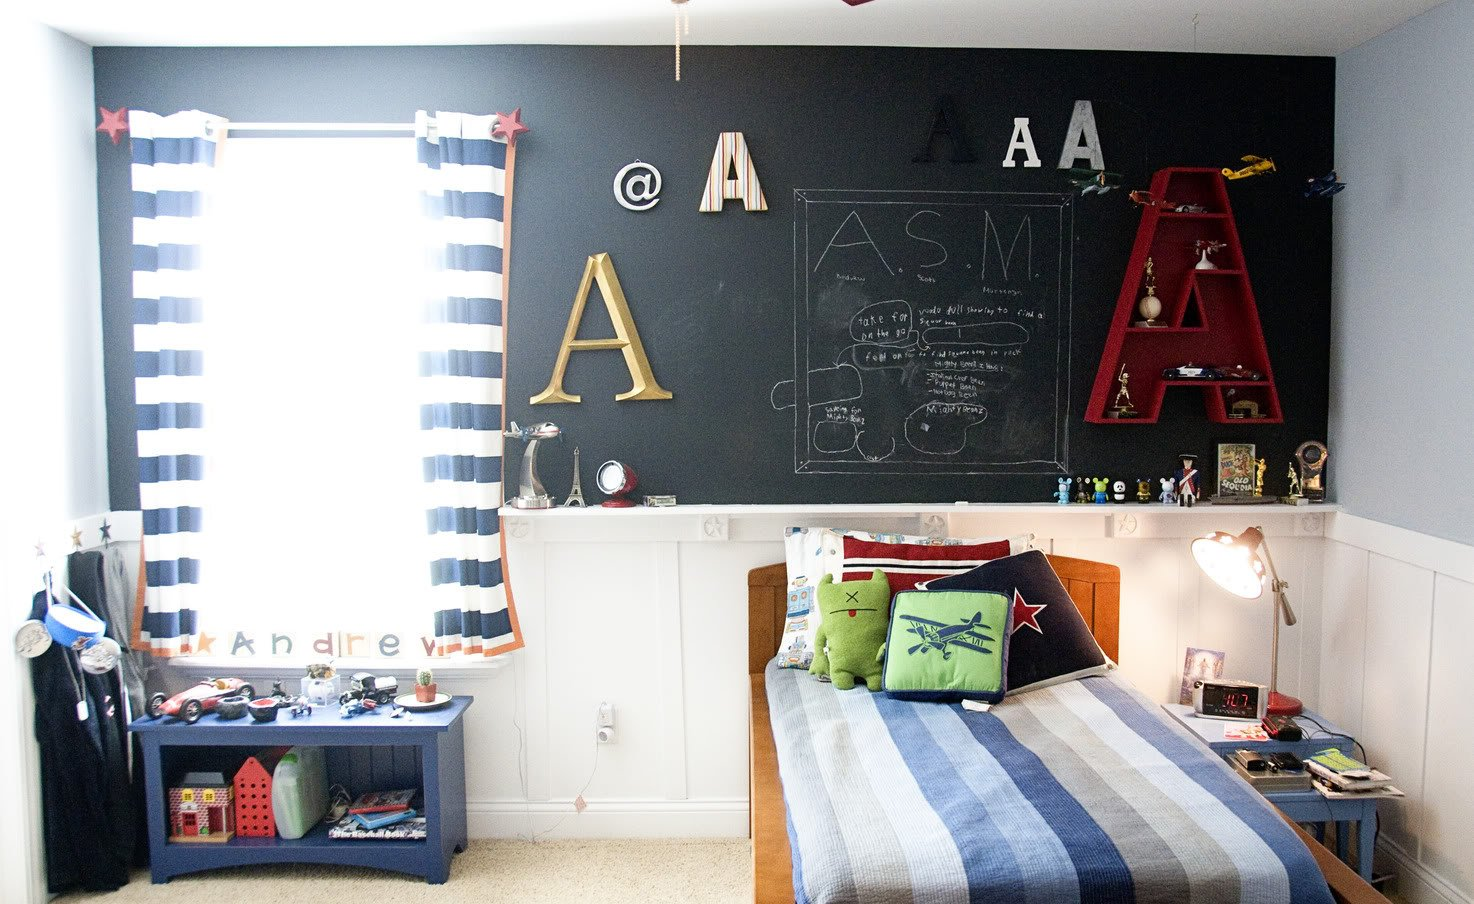 Cool Bedroom Ideas - 12 Boy Bedroom Ideas | Today\'s Creative ...